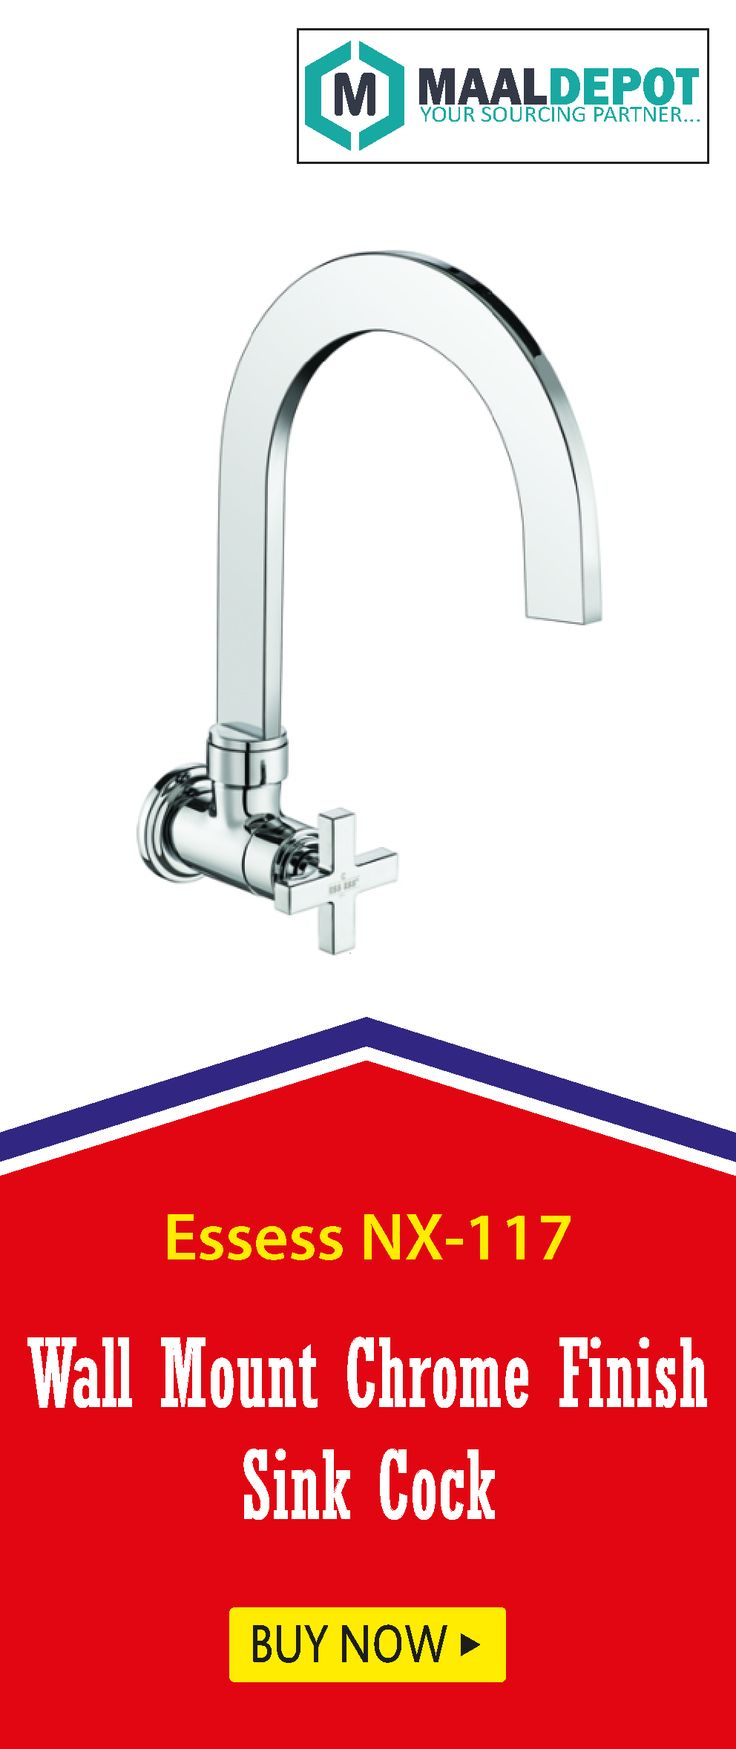 Essess NX-117 Cressida Series-Wall Mount Chrome Finish Sink Cock With Regular Swinging Spout. Shop at http://bit.ly/2aTPy9B for affordable prices. To place orders,call or whatsapp to 9019156789